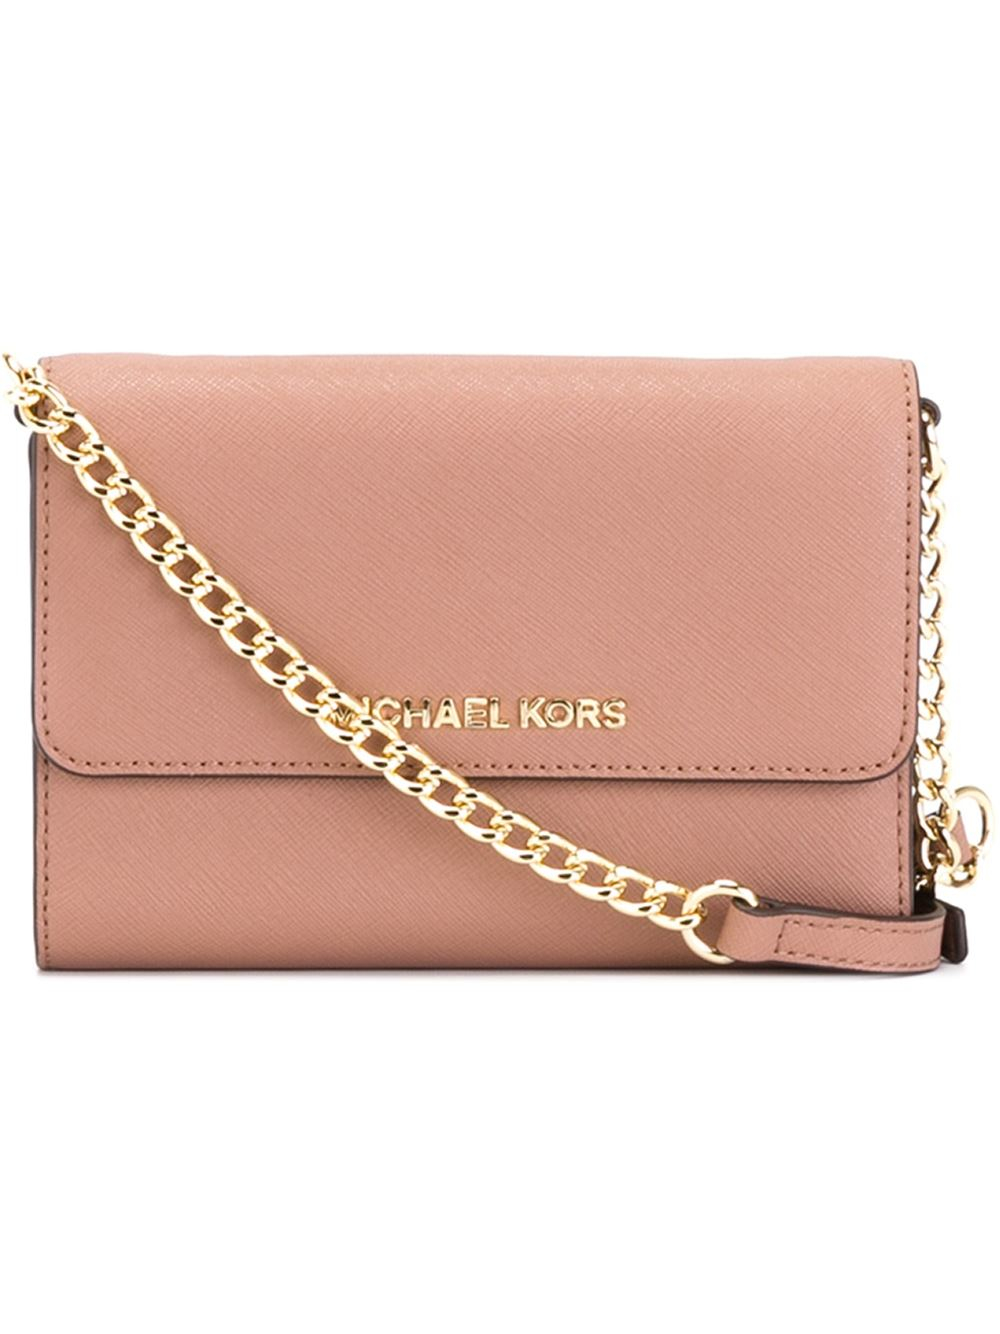 6a14ff5f335c MICHAEL Michael Kors 'jet Set Travel' Phone Crossbody Bag in Pink - Lyst